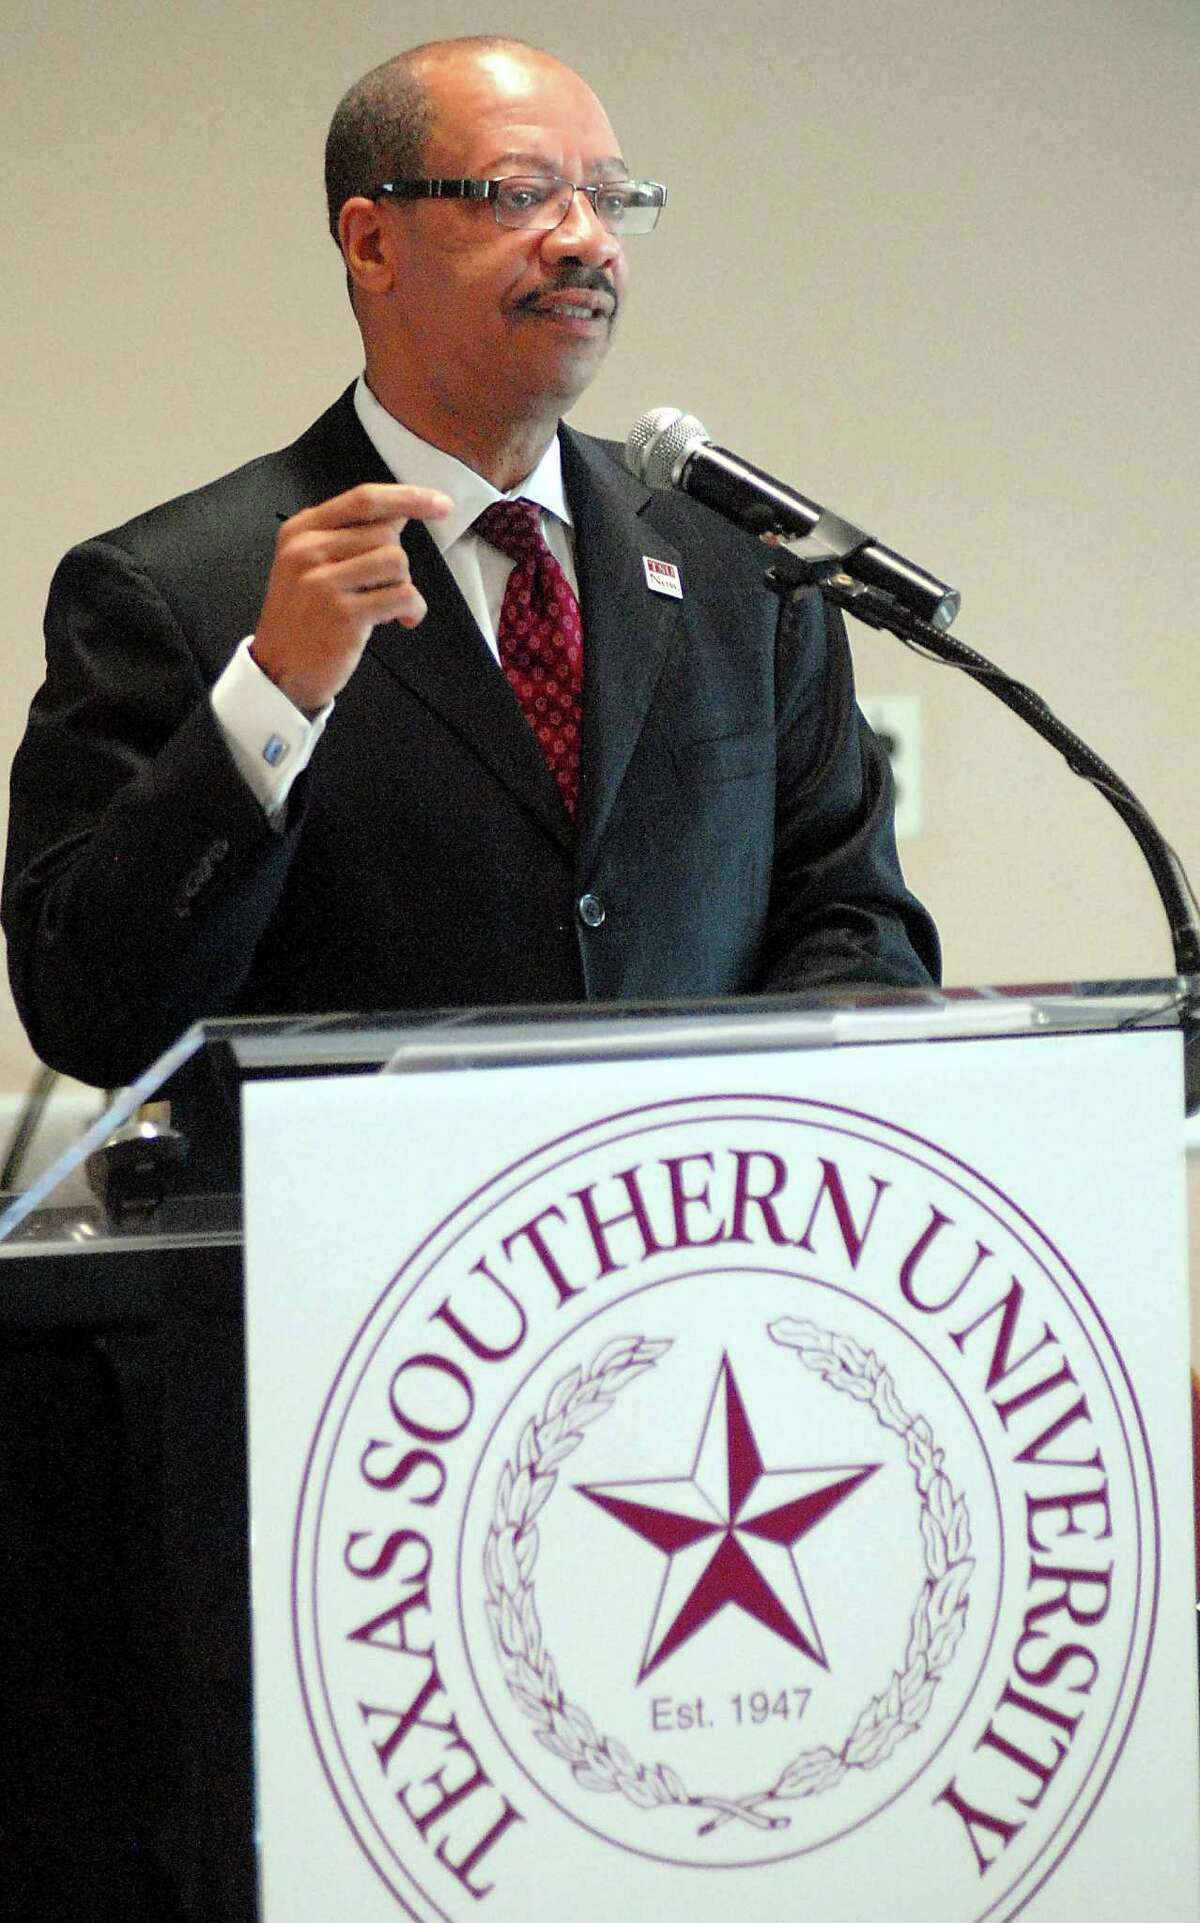 Texas Southern University president John Rudley will be stepping down in August 2016. Rudley is considering having another role at the university.